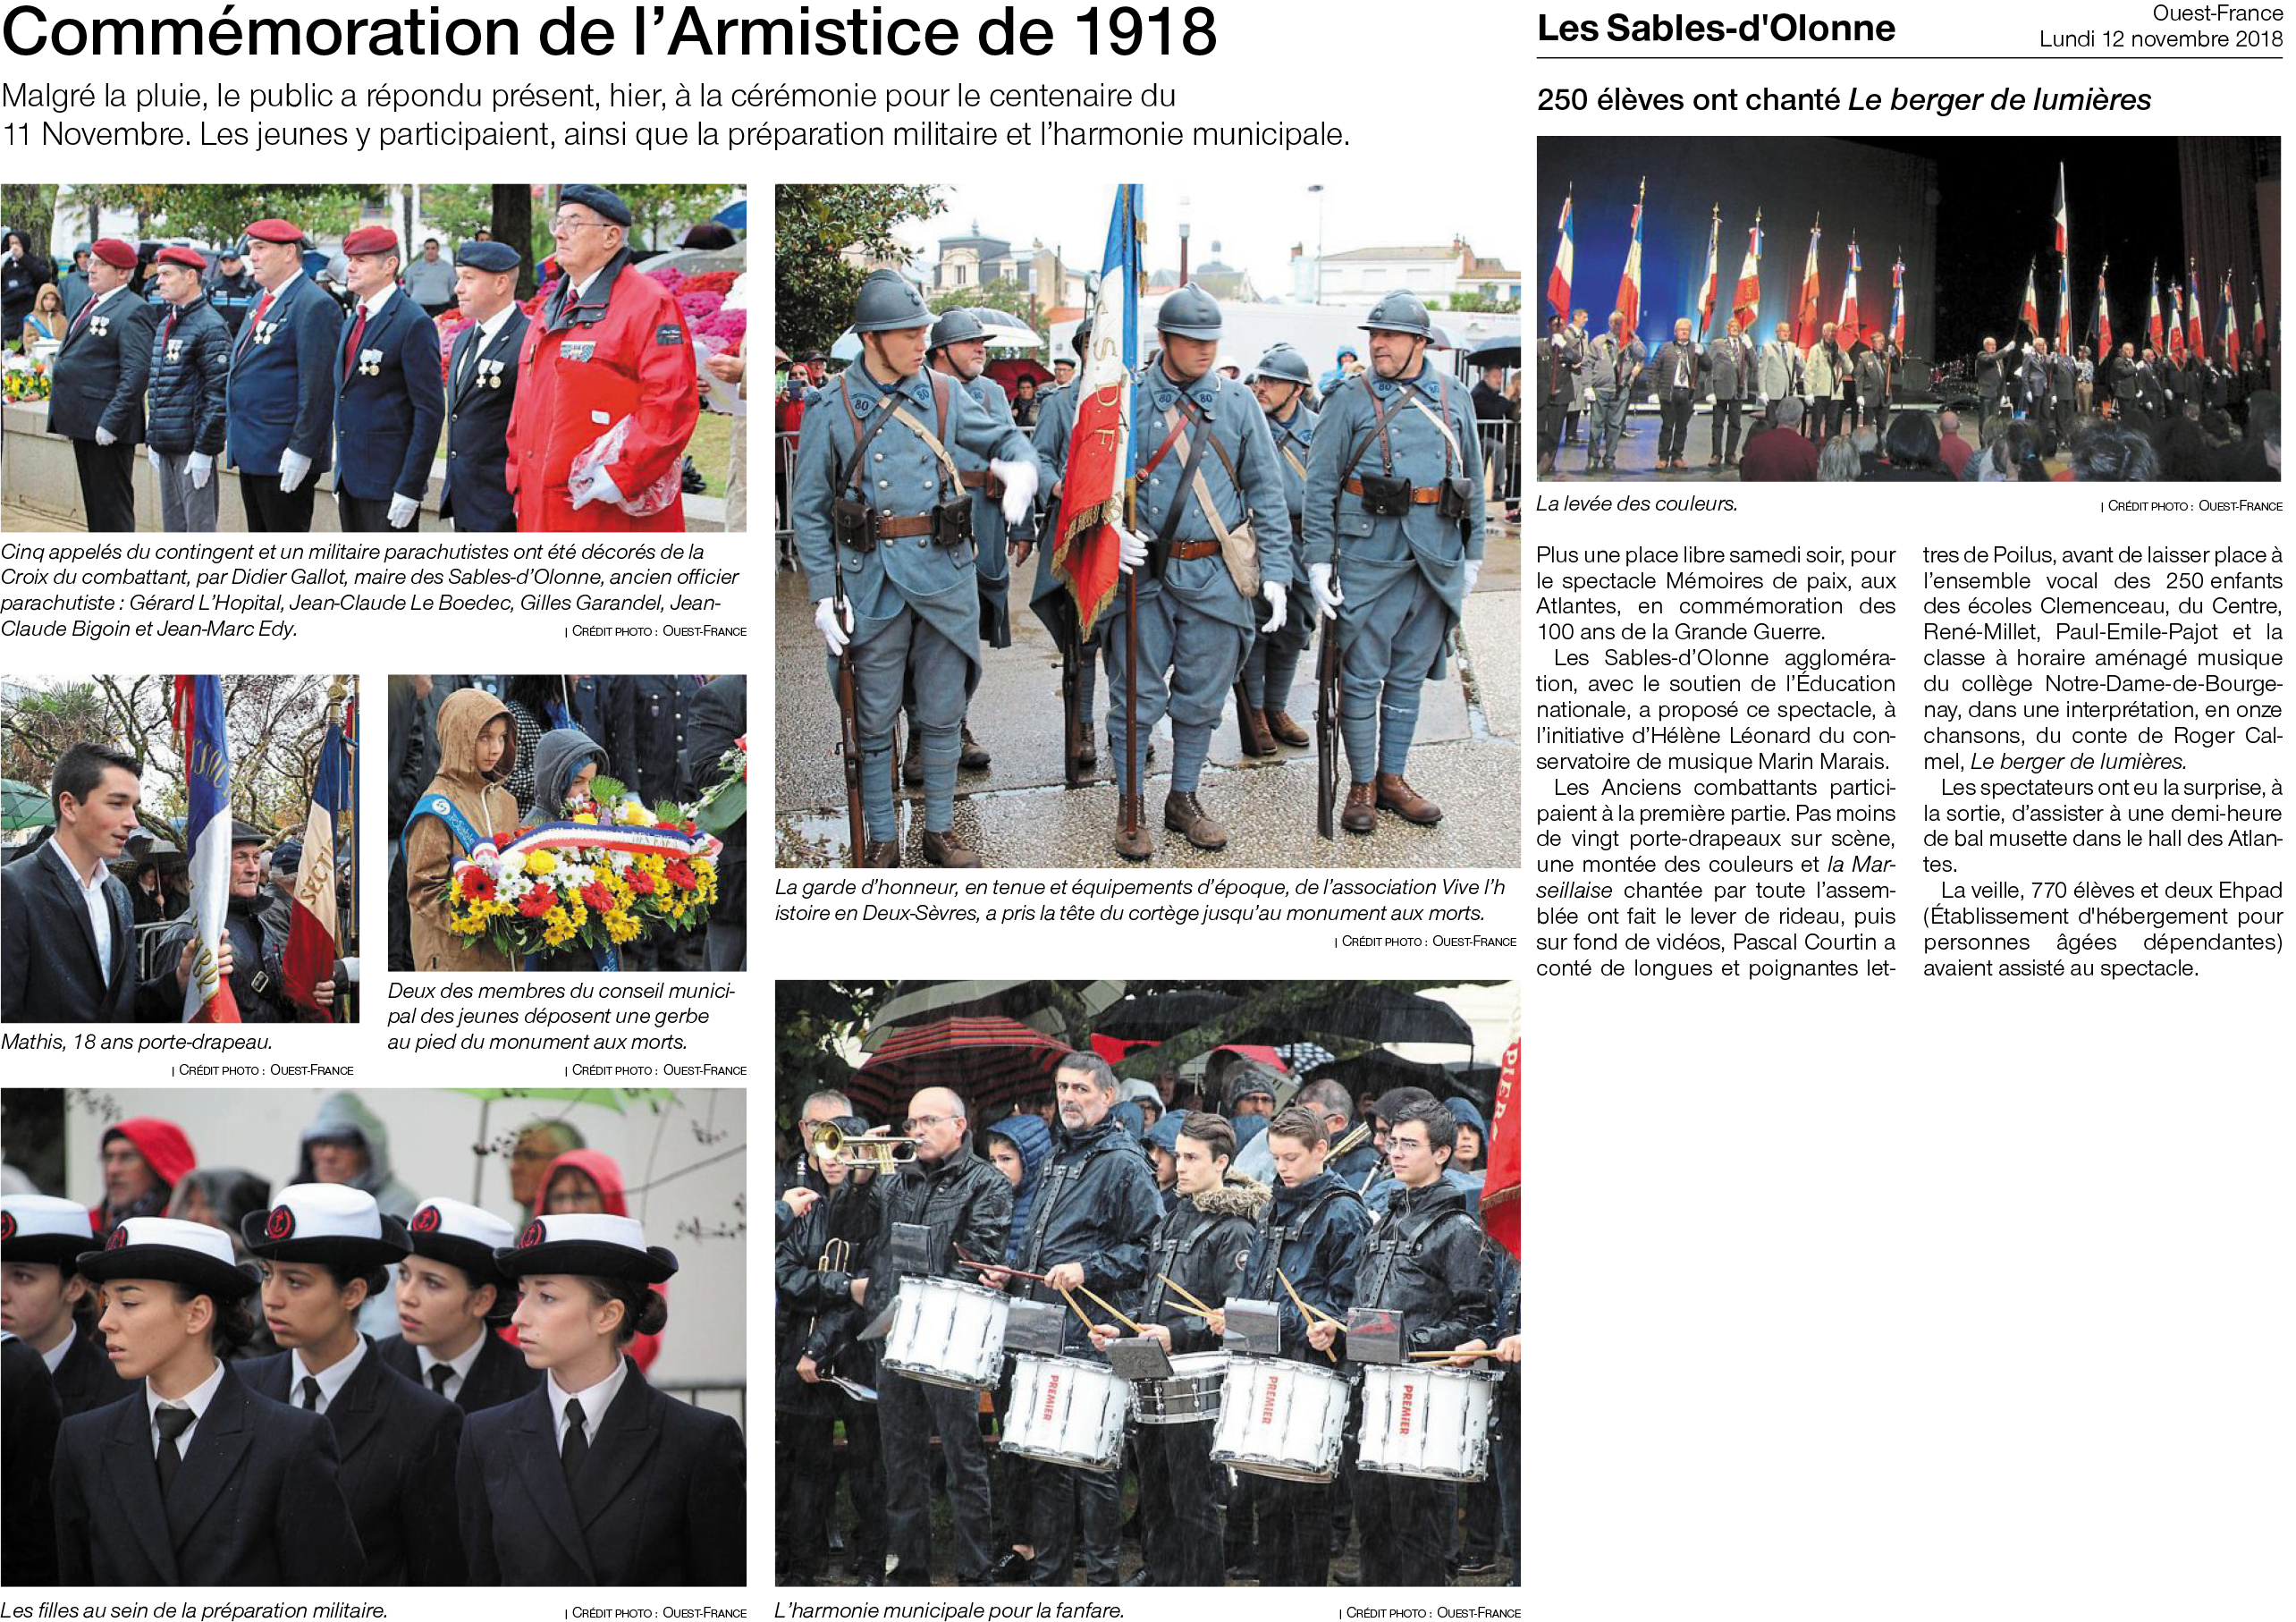 Commemoration1918_5